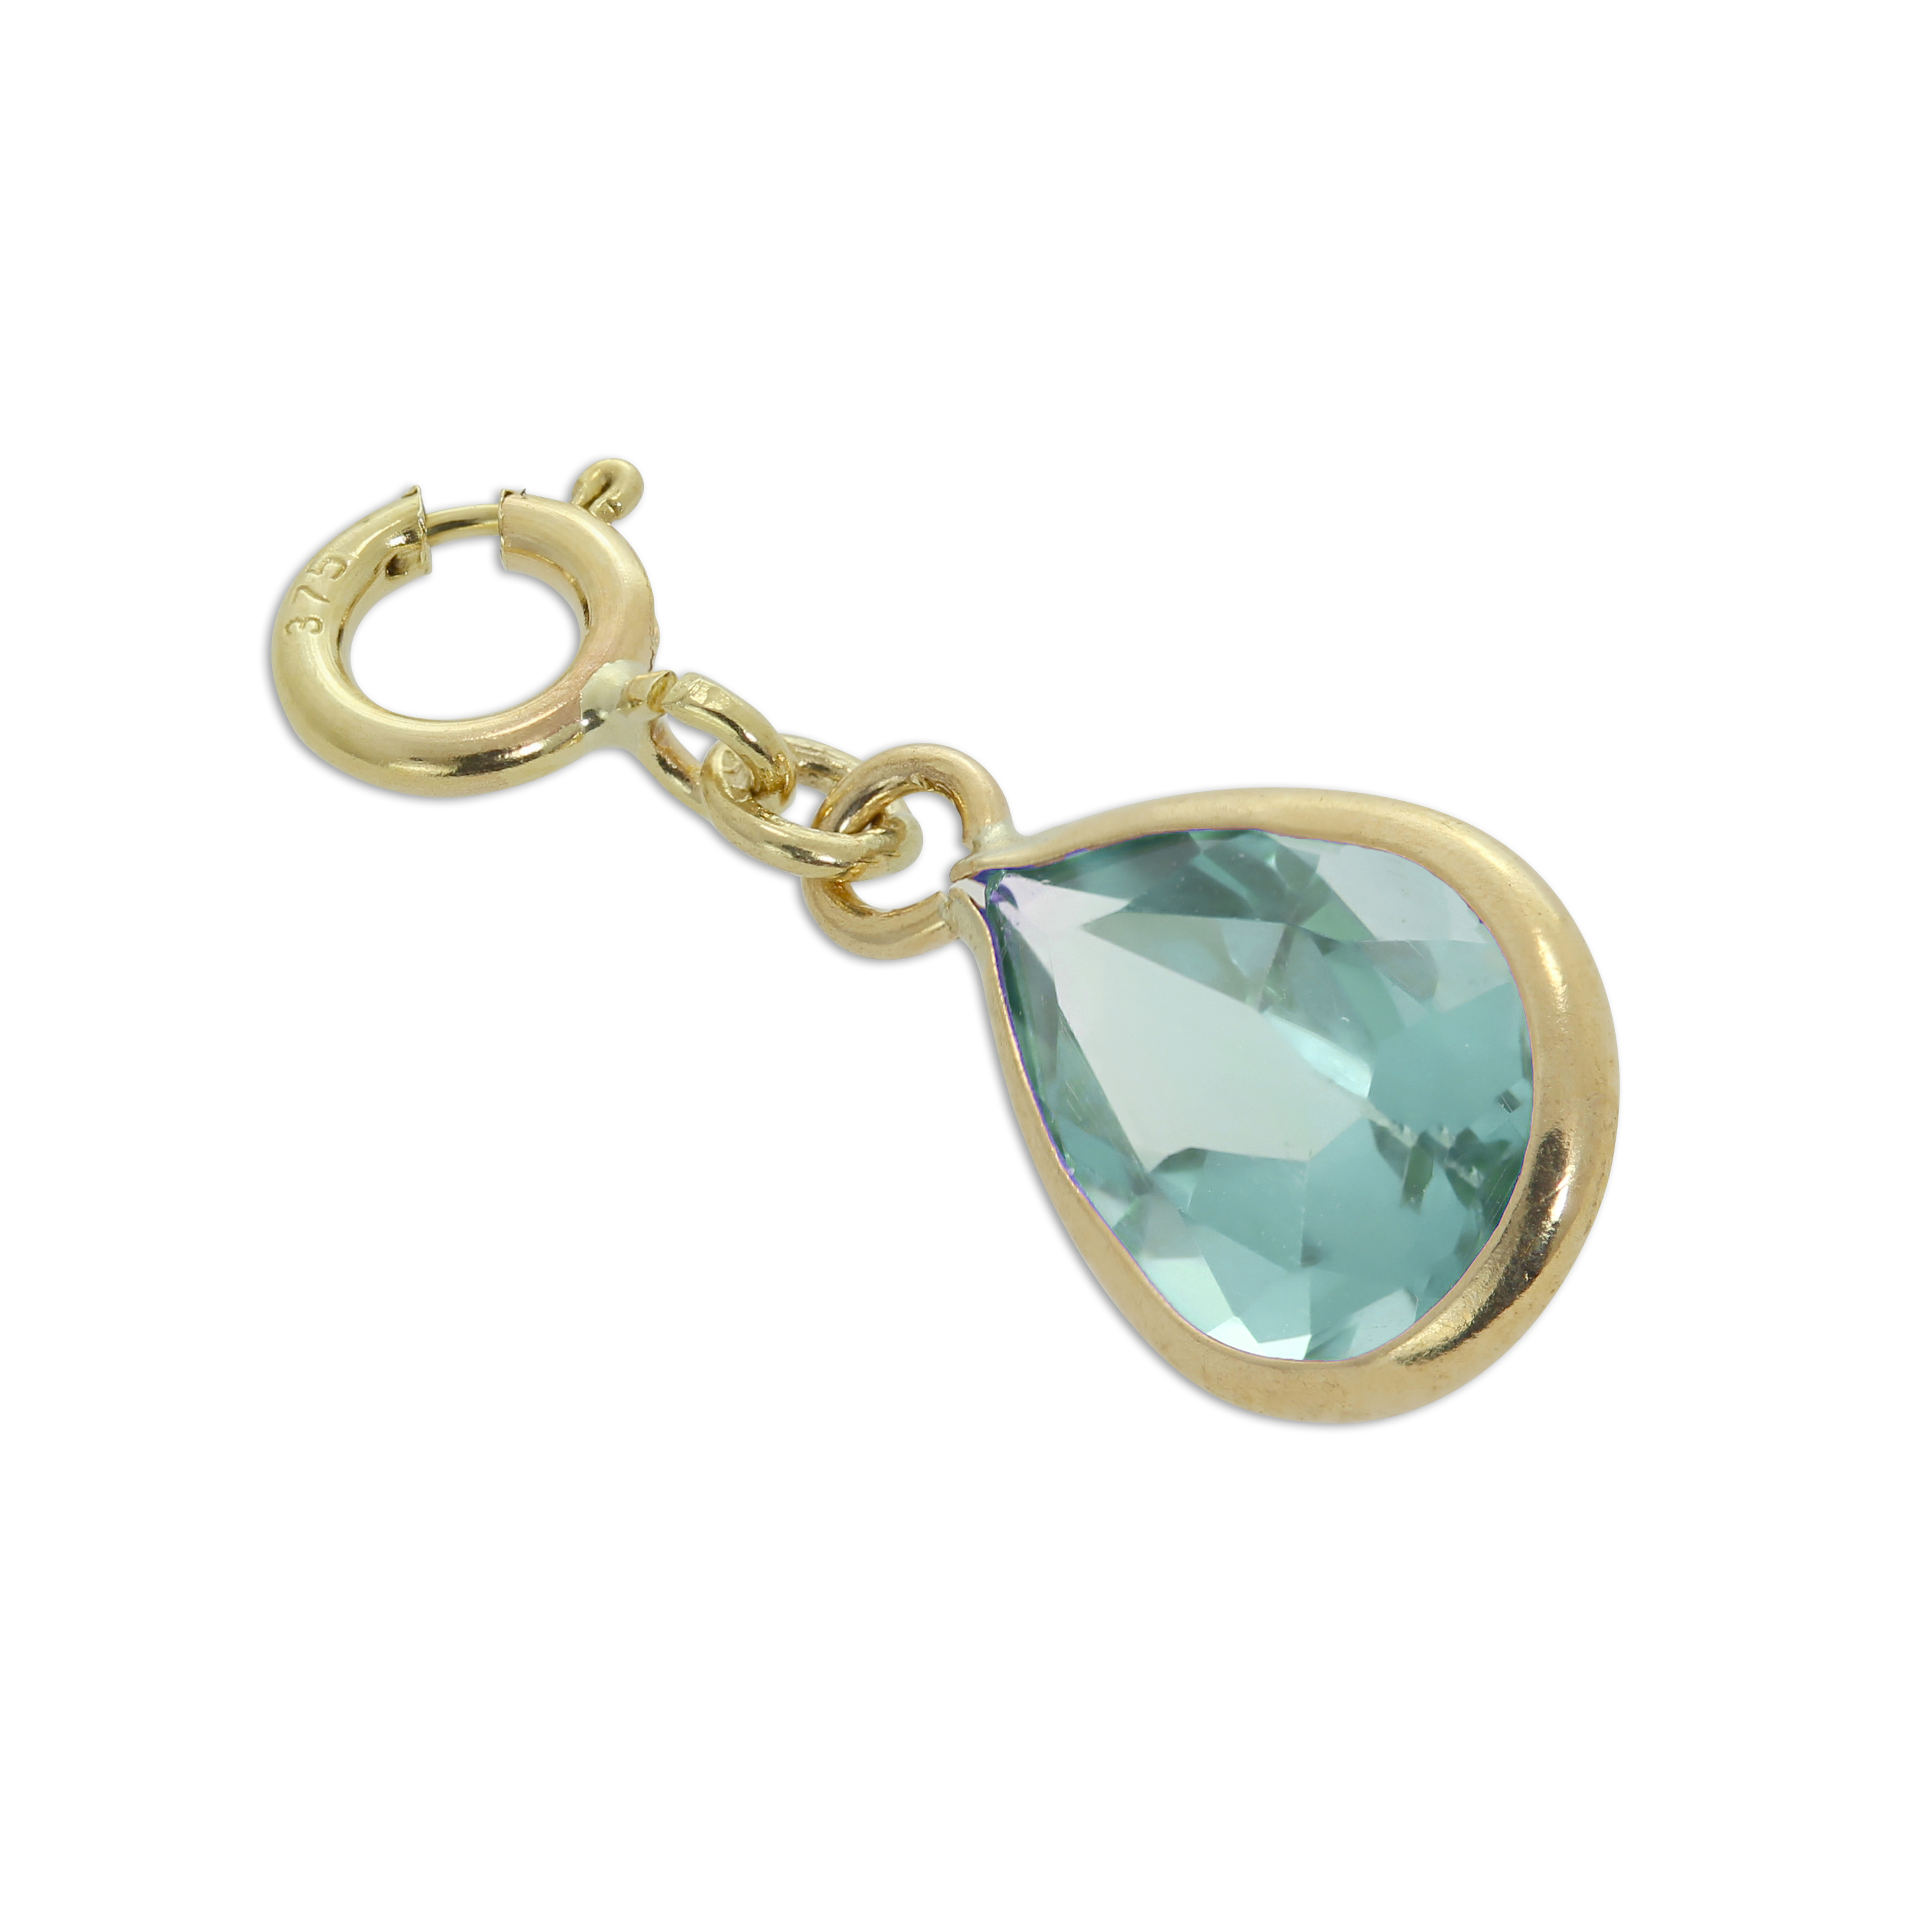 An image of Large 9ct Gold Aquamarine CZ Oval Clip on Charm